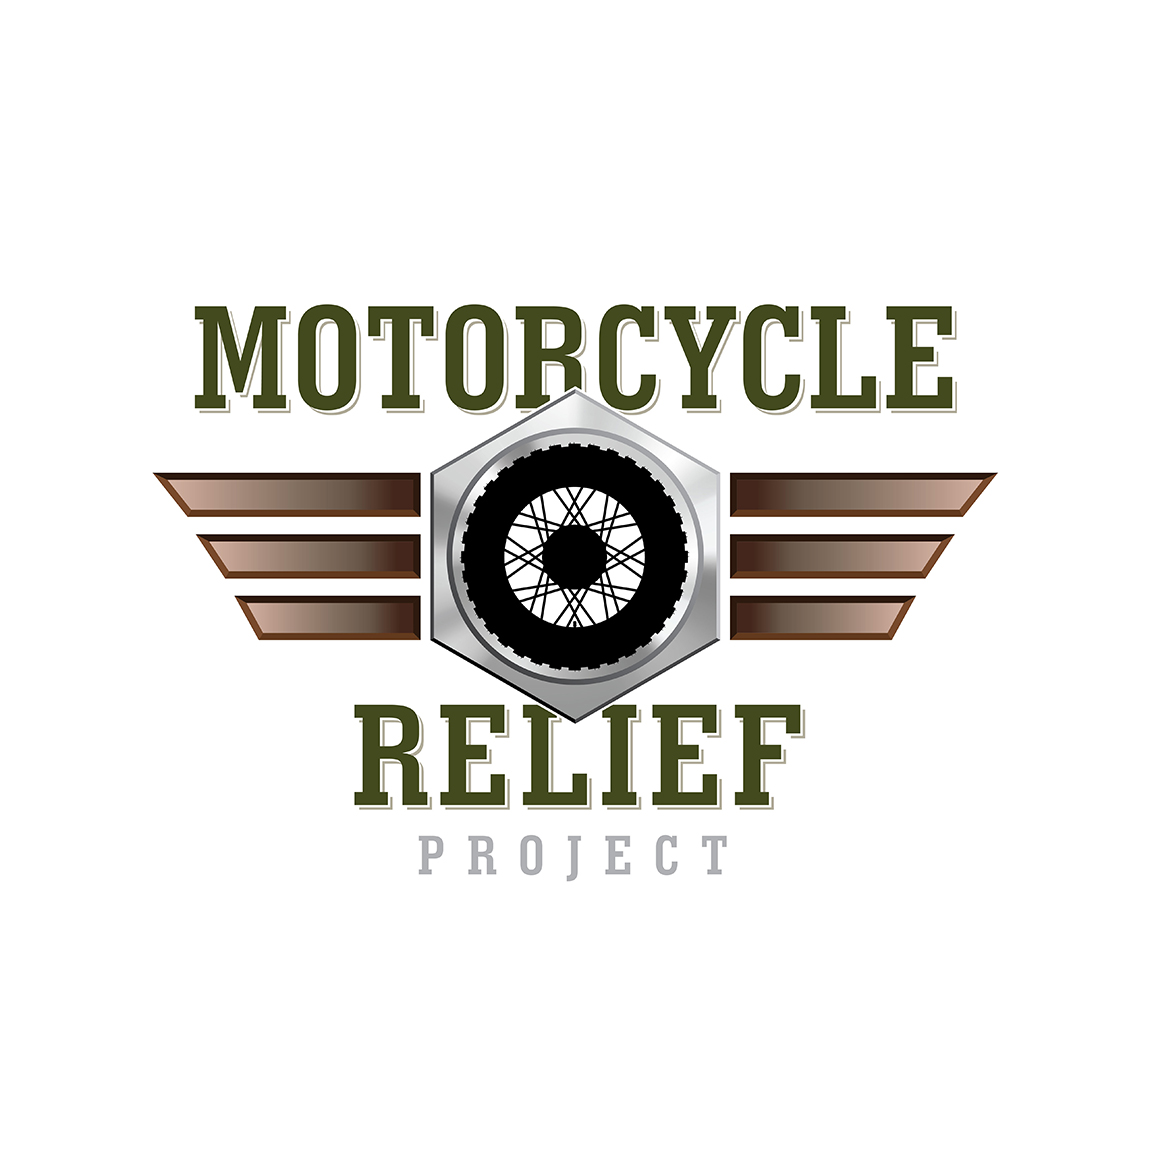 01 Motorcycle Relief Project BMW GS Adventure Riding PTSD Veterans Logo